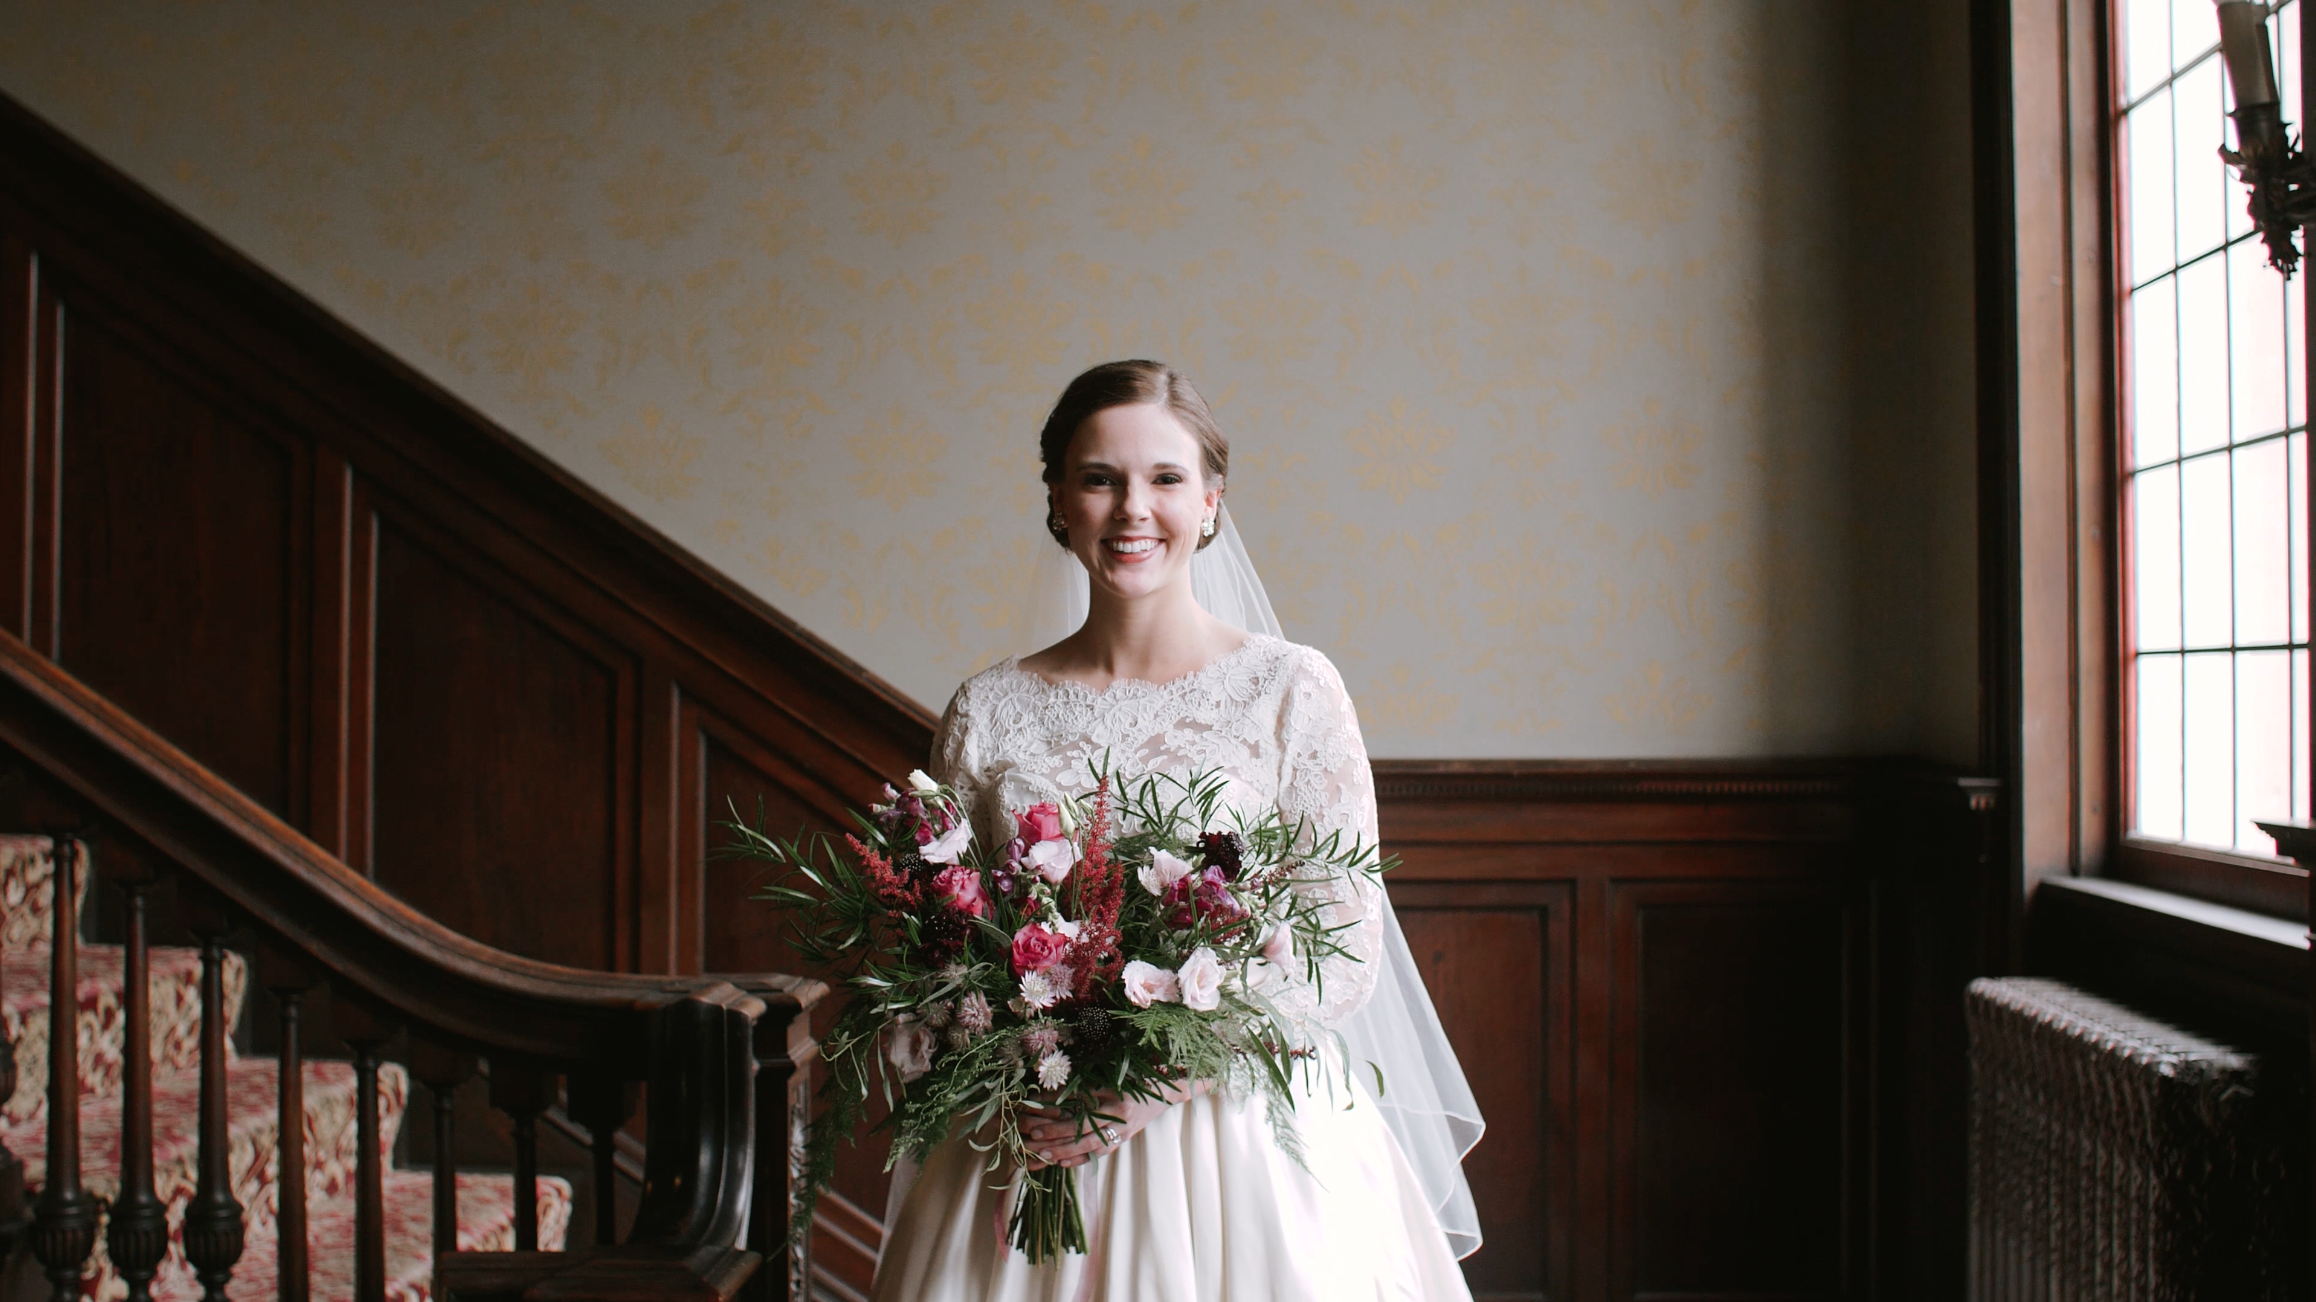 Kate holding bridal bouquet near steps and window with natural lighting.